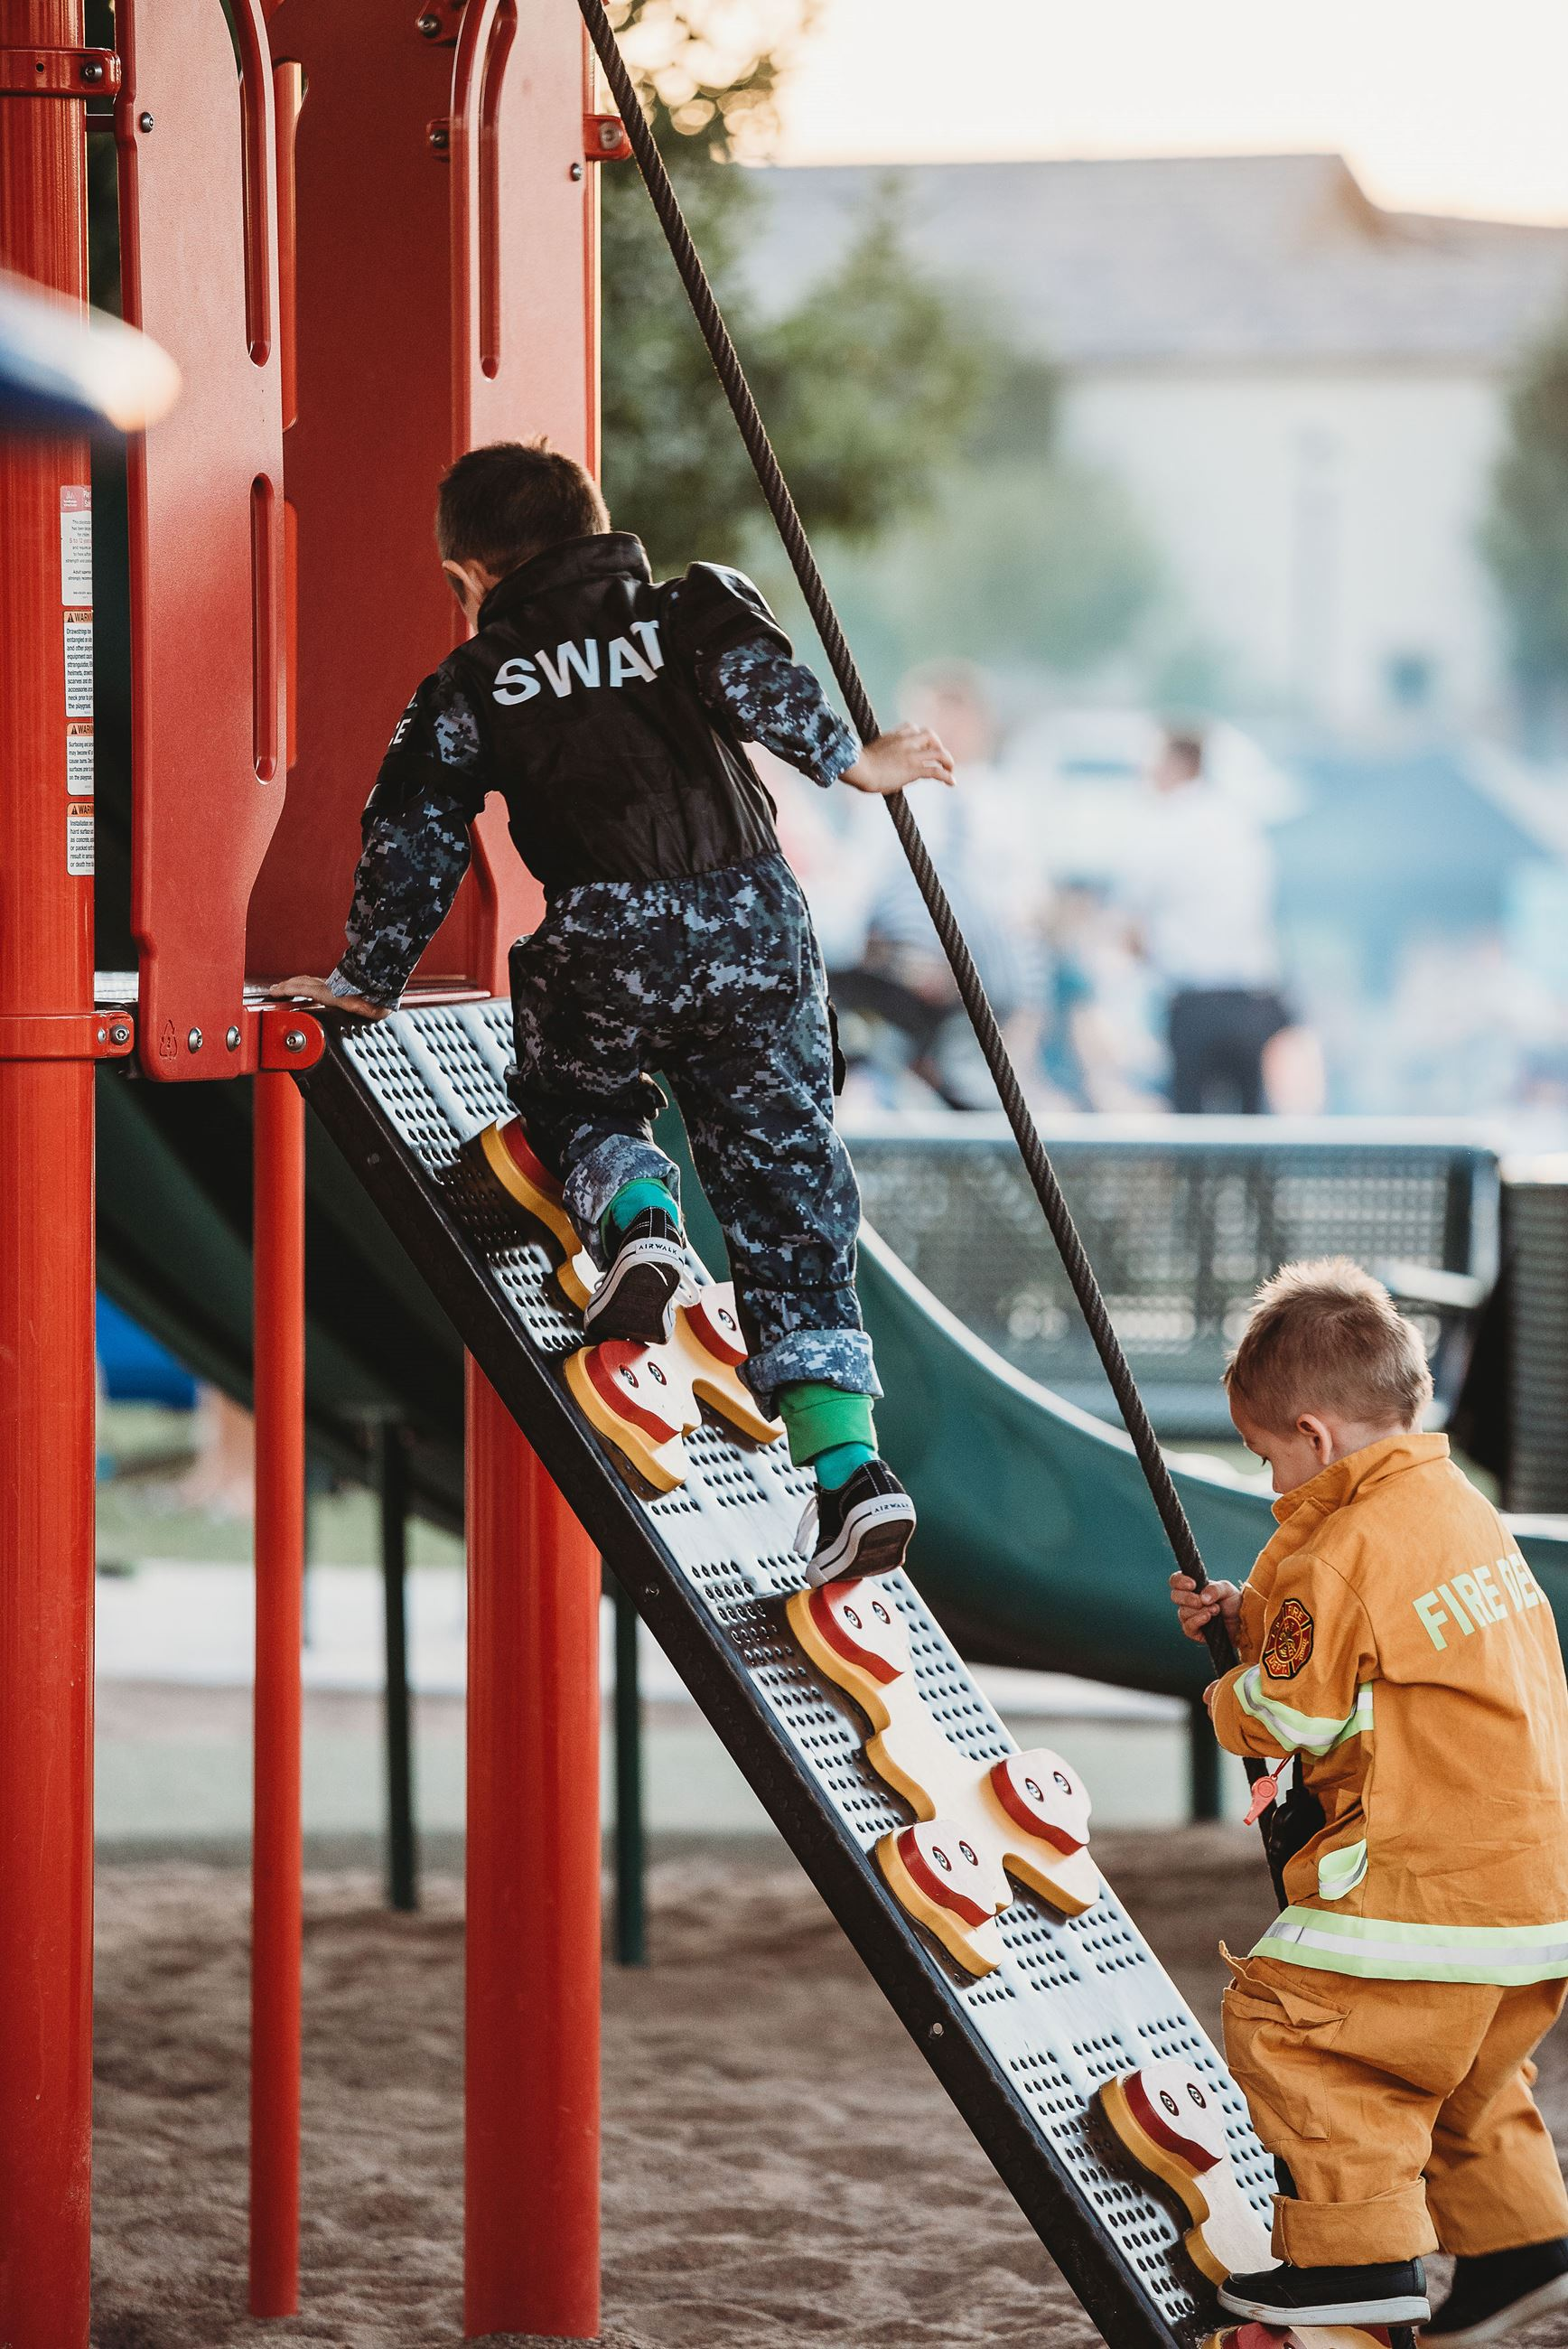 Two Young Boys Dressed as a SWAT Team Soldier and a Firefighter Climb a Play Structure